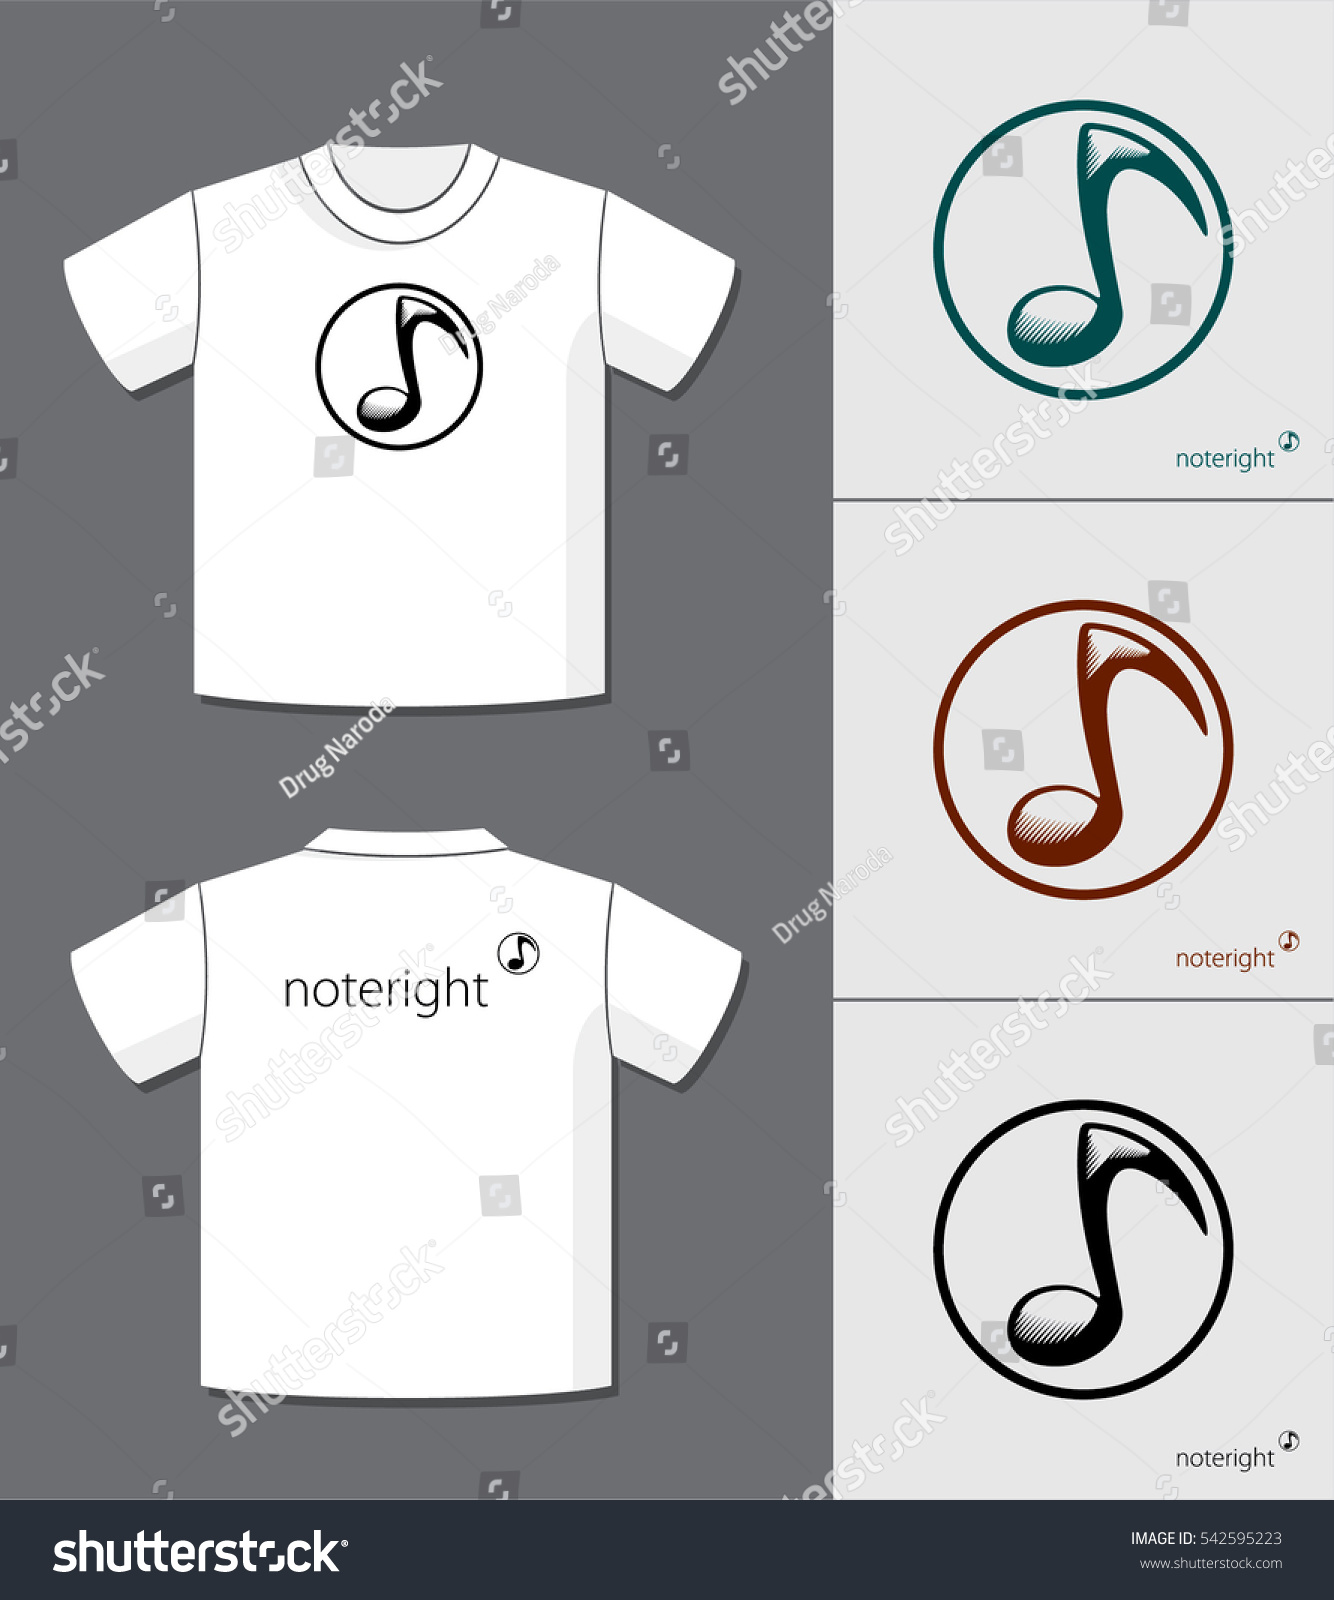 T Shirt Logo Design Software Free Dreamworks